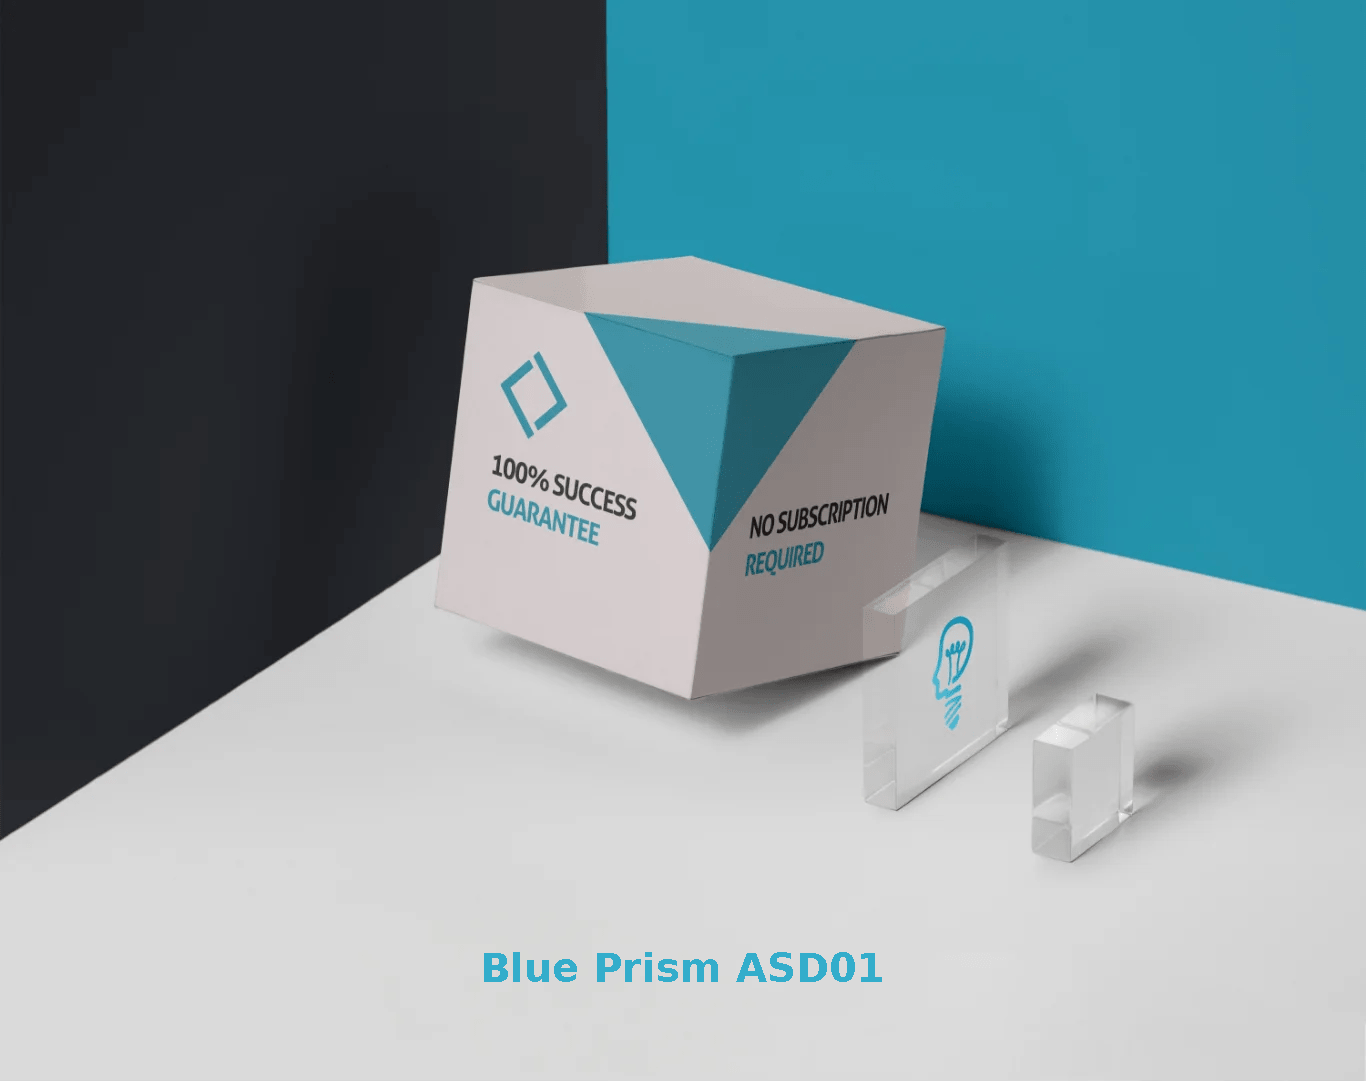 Blue Prism ASD01 Exams